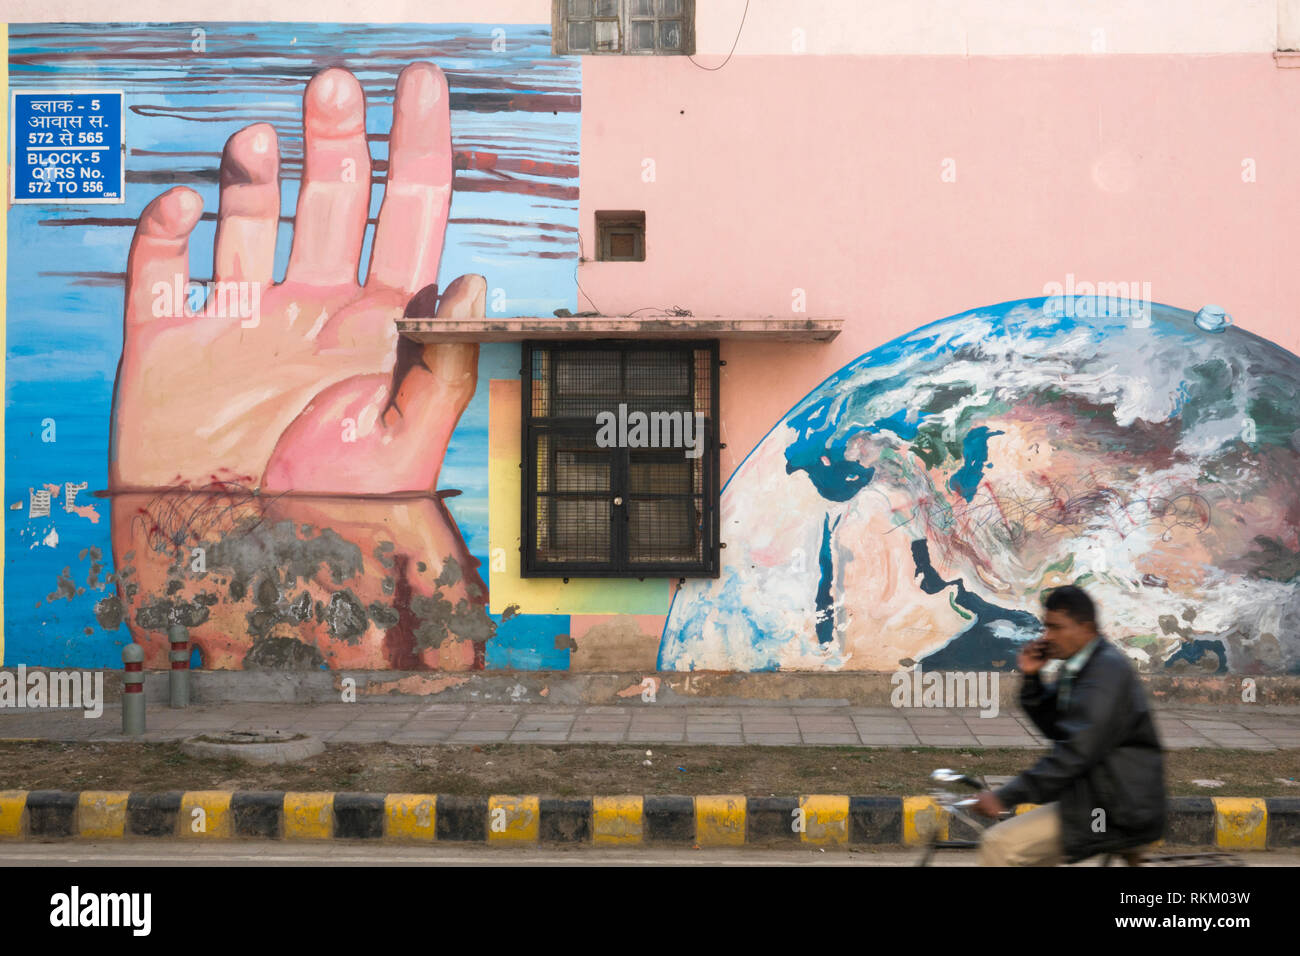 Man rides past a mural titled Hands Underwater by artist Gaia, in Lodhi Colony, New Delhi, India - Stock Image